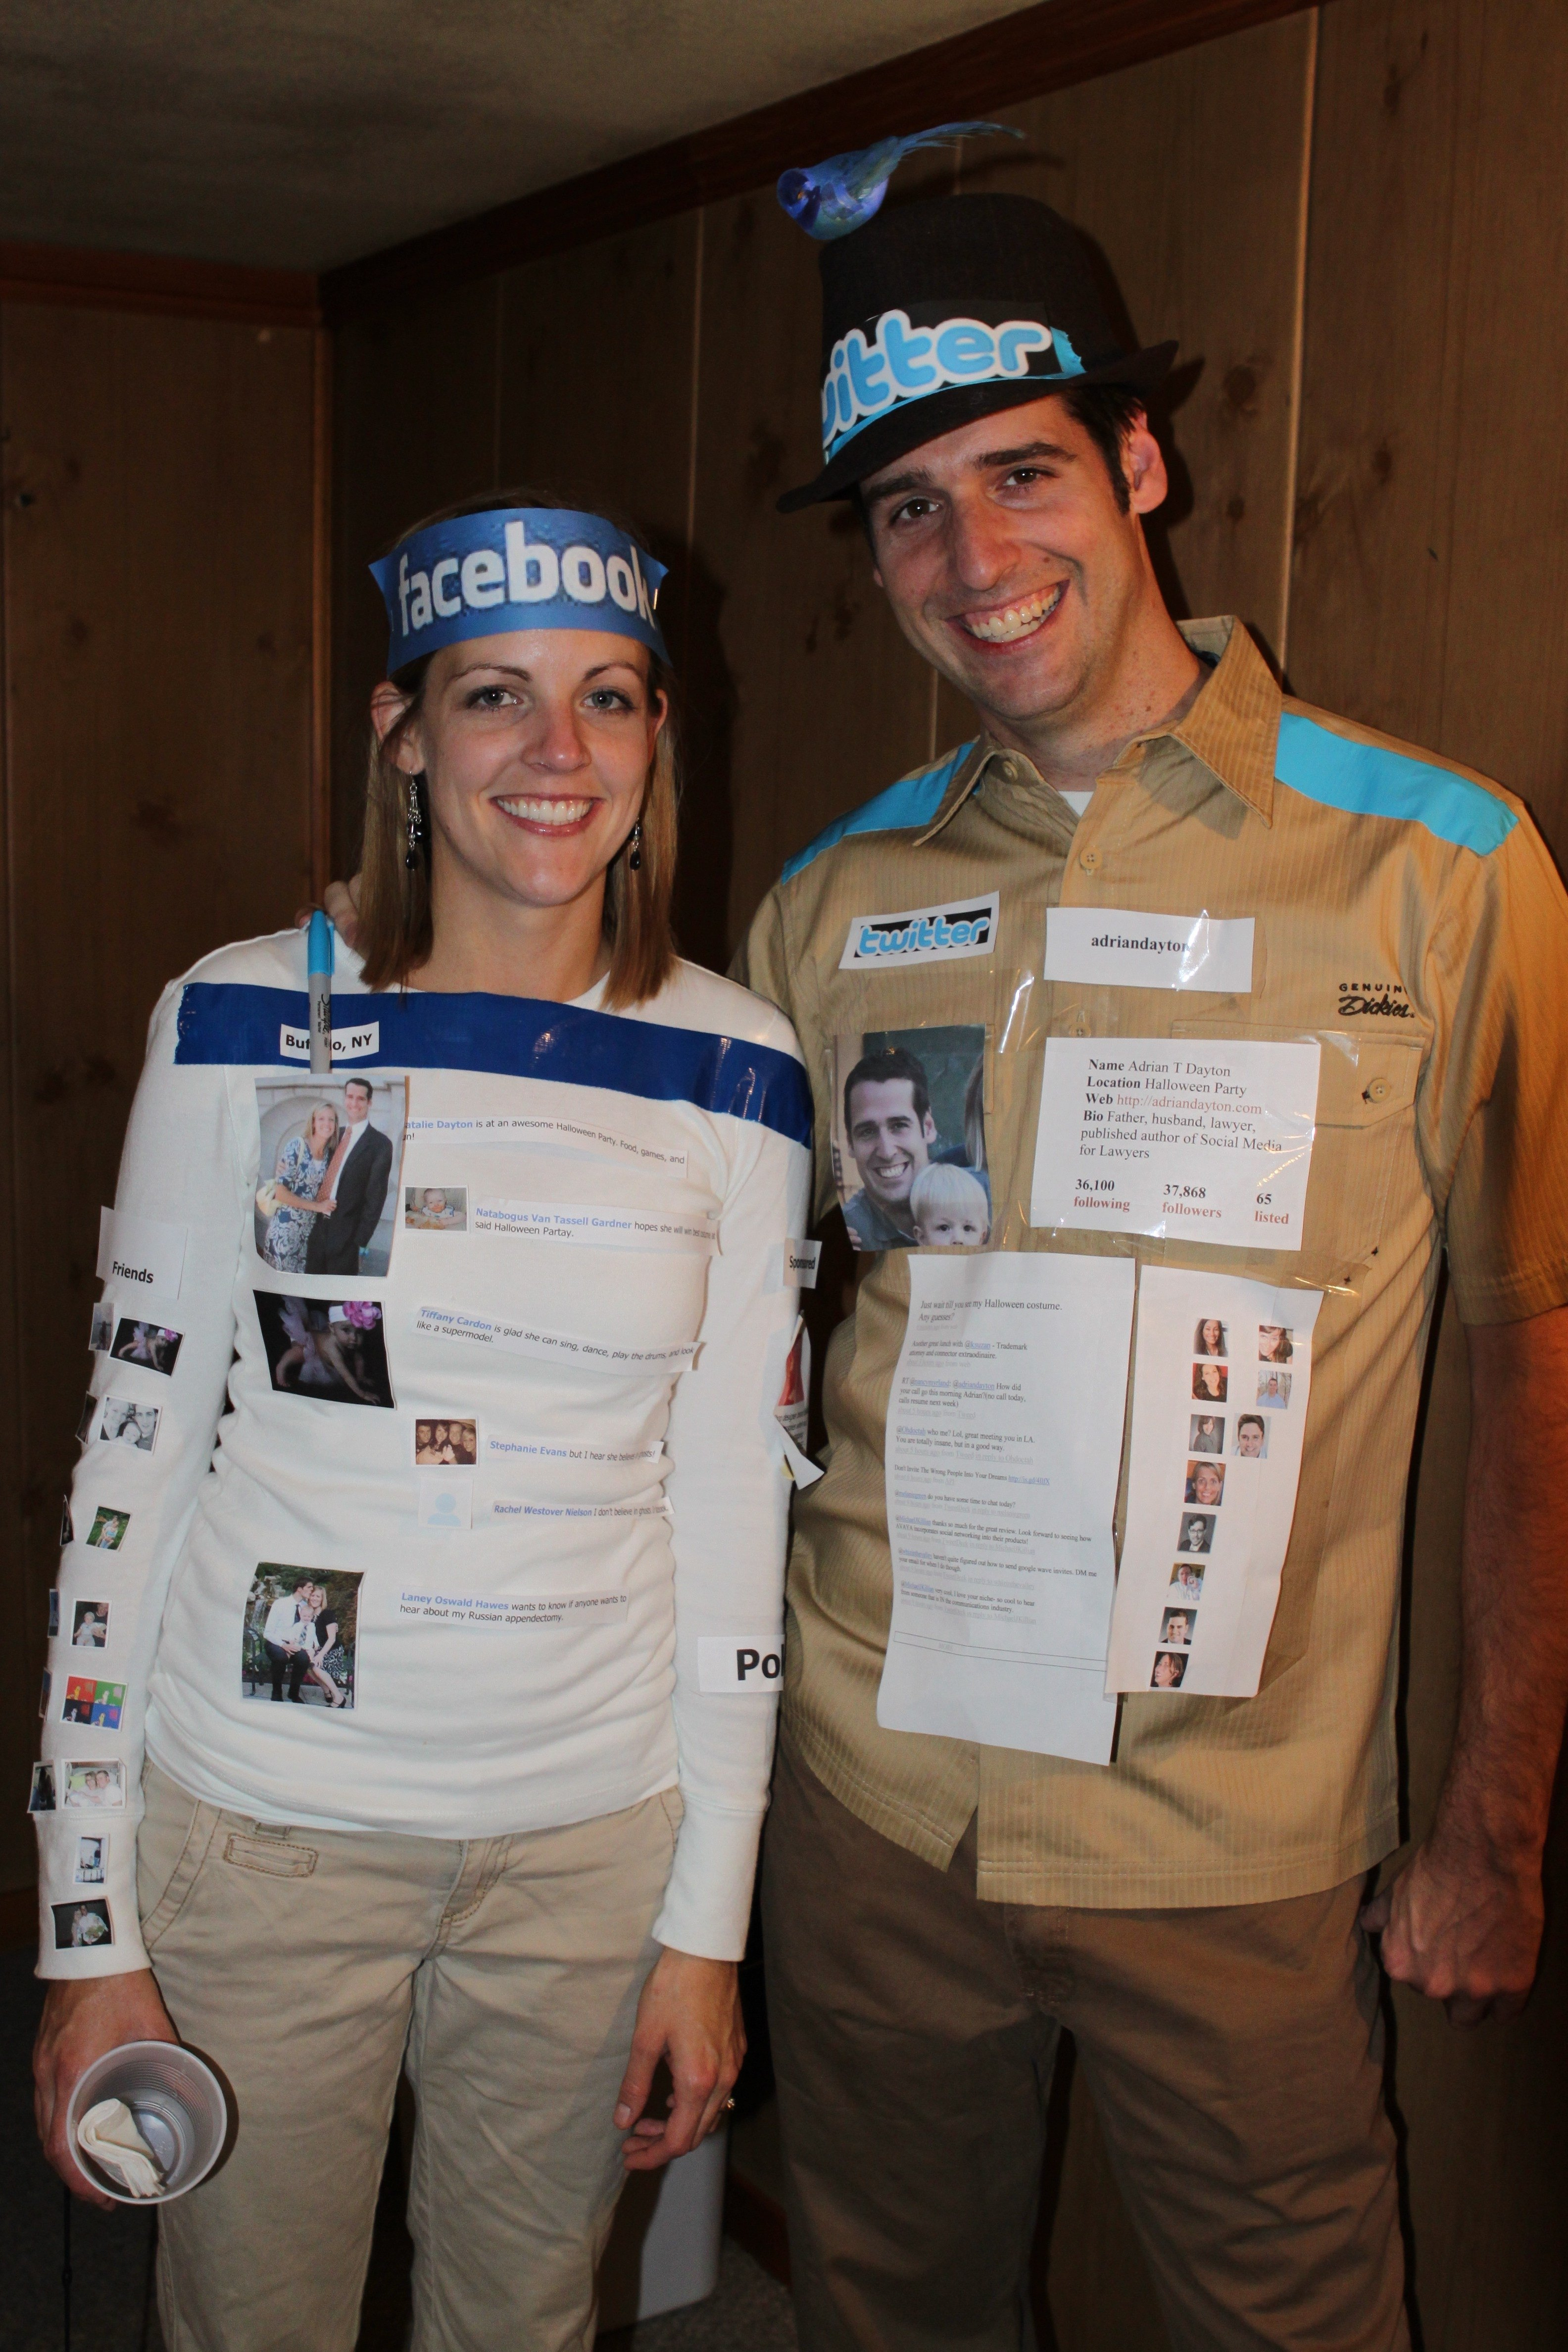 10 Most Recommended Couples Homemade Halloween Costume Ideas the social media couple costume 11 2021